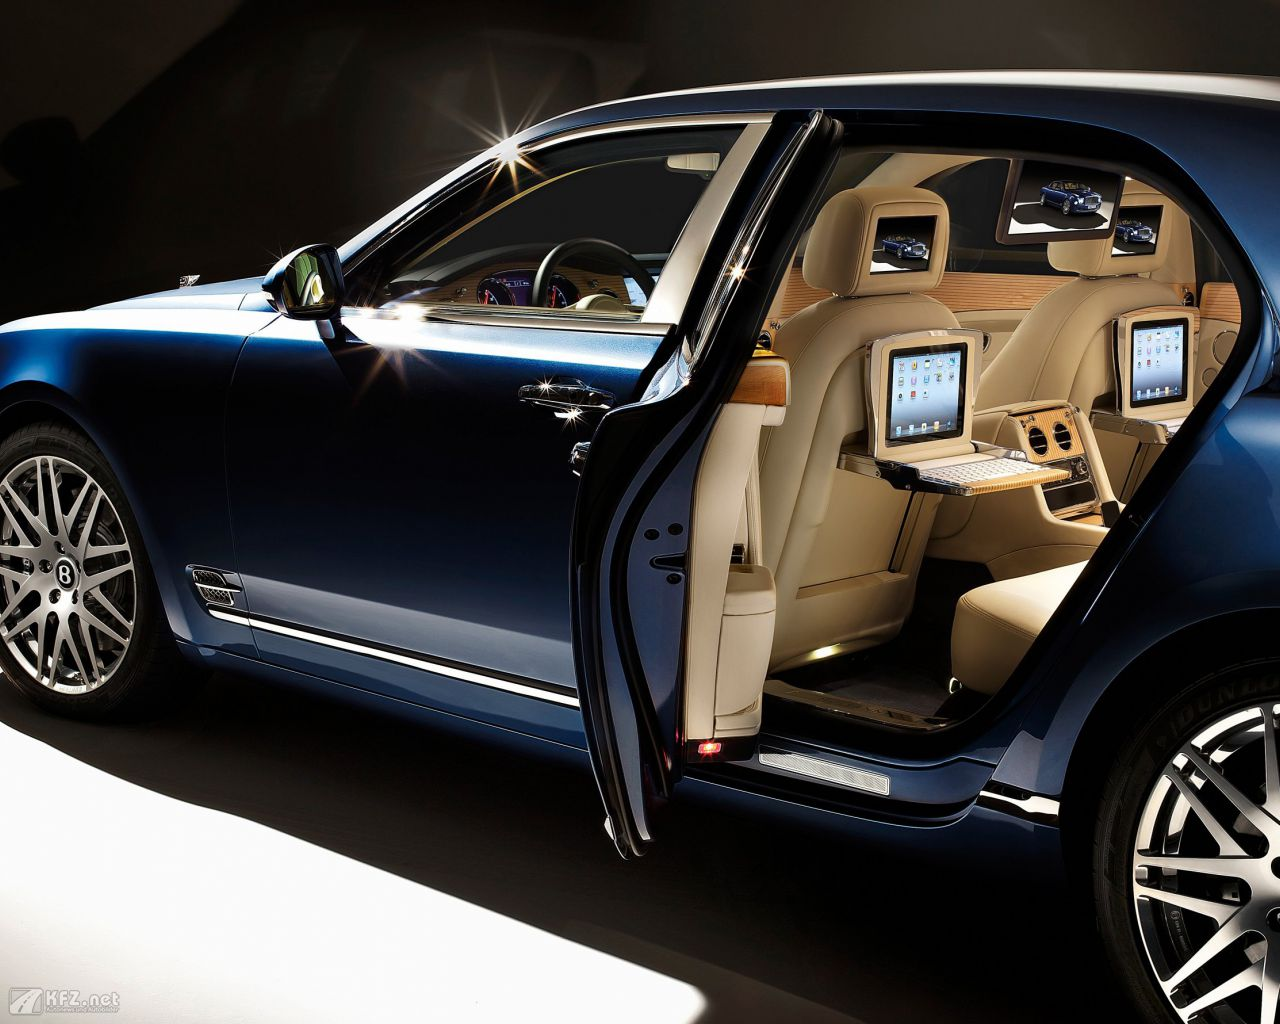 bentley-mulsanne-1280x1024-6